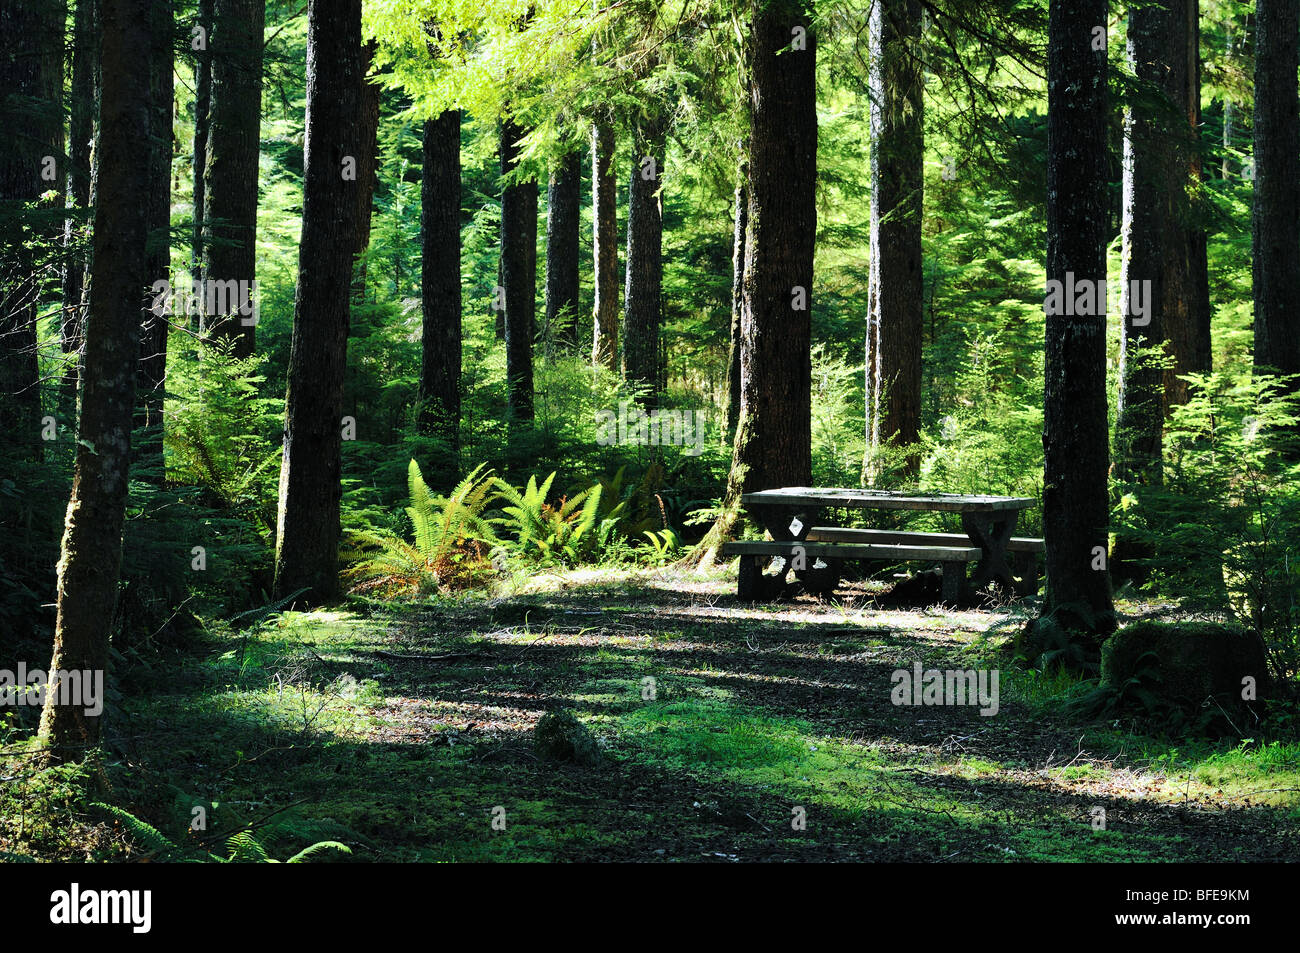 Picnic table set among trees, Marble River campsite near Port Alice, Vancouver Island, British Columbia, Canada - Stock Image